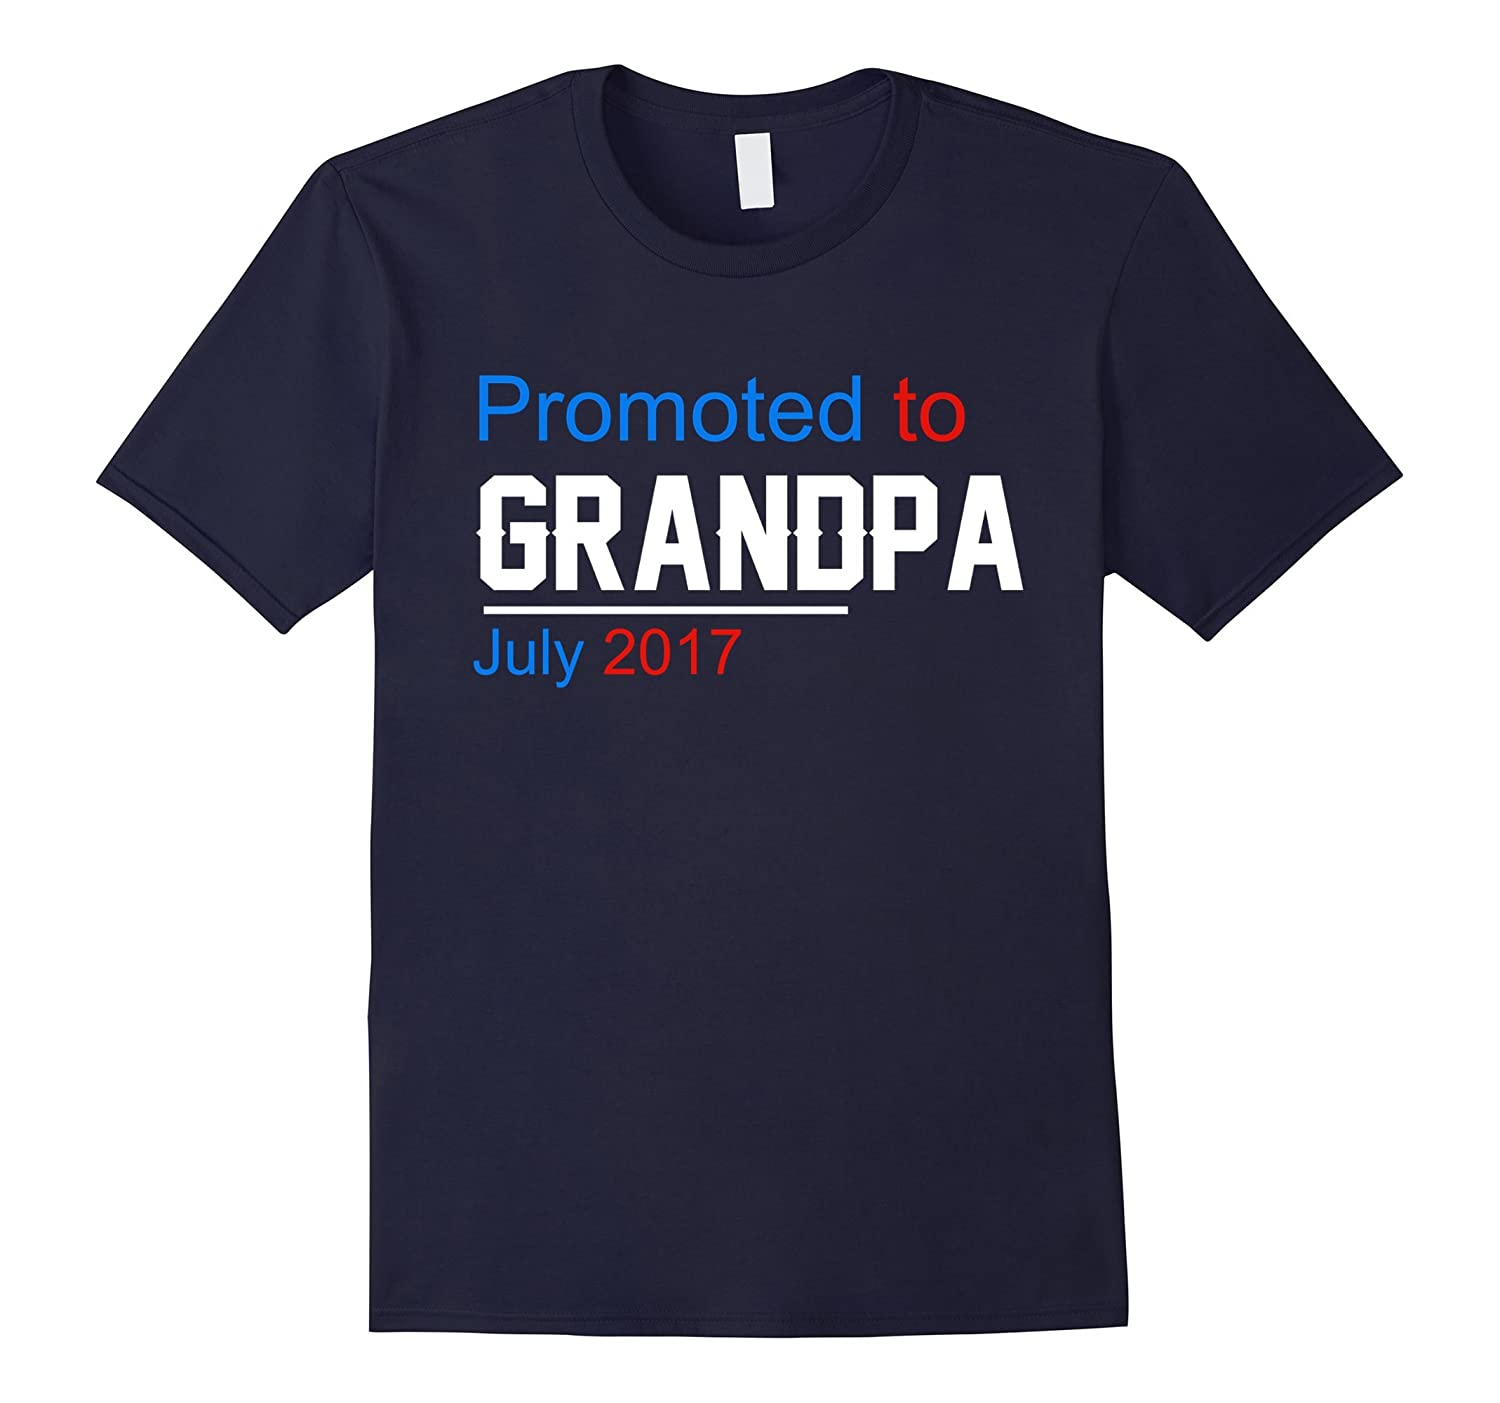 Mens Promoted to Grandpa July 2017 T-Shirt Gift for Papa